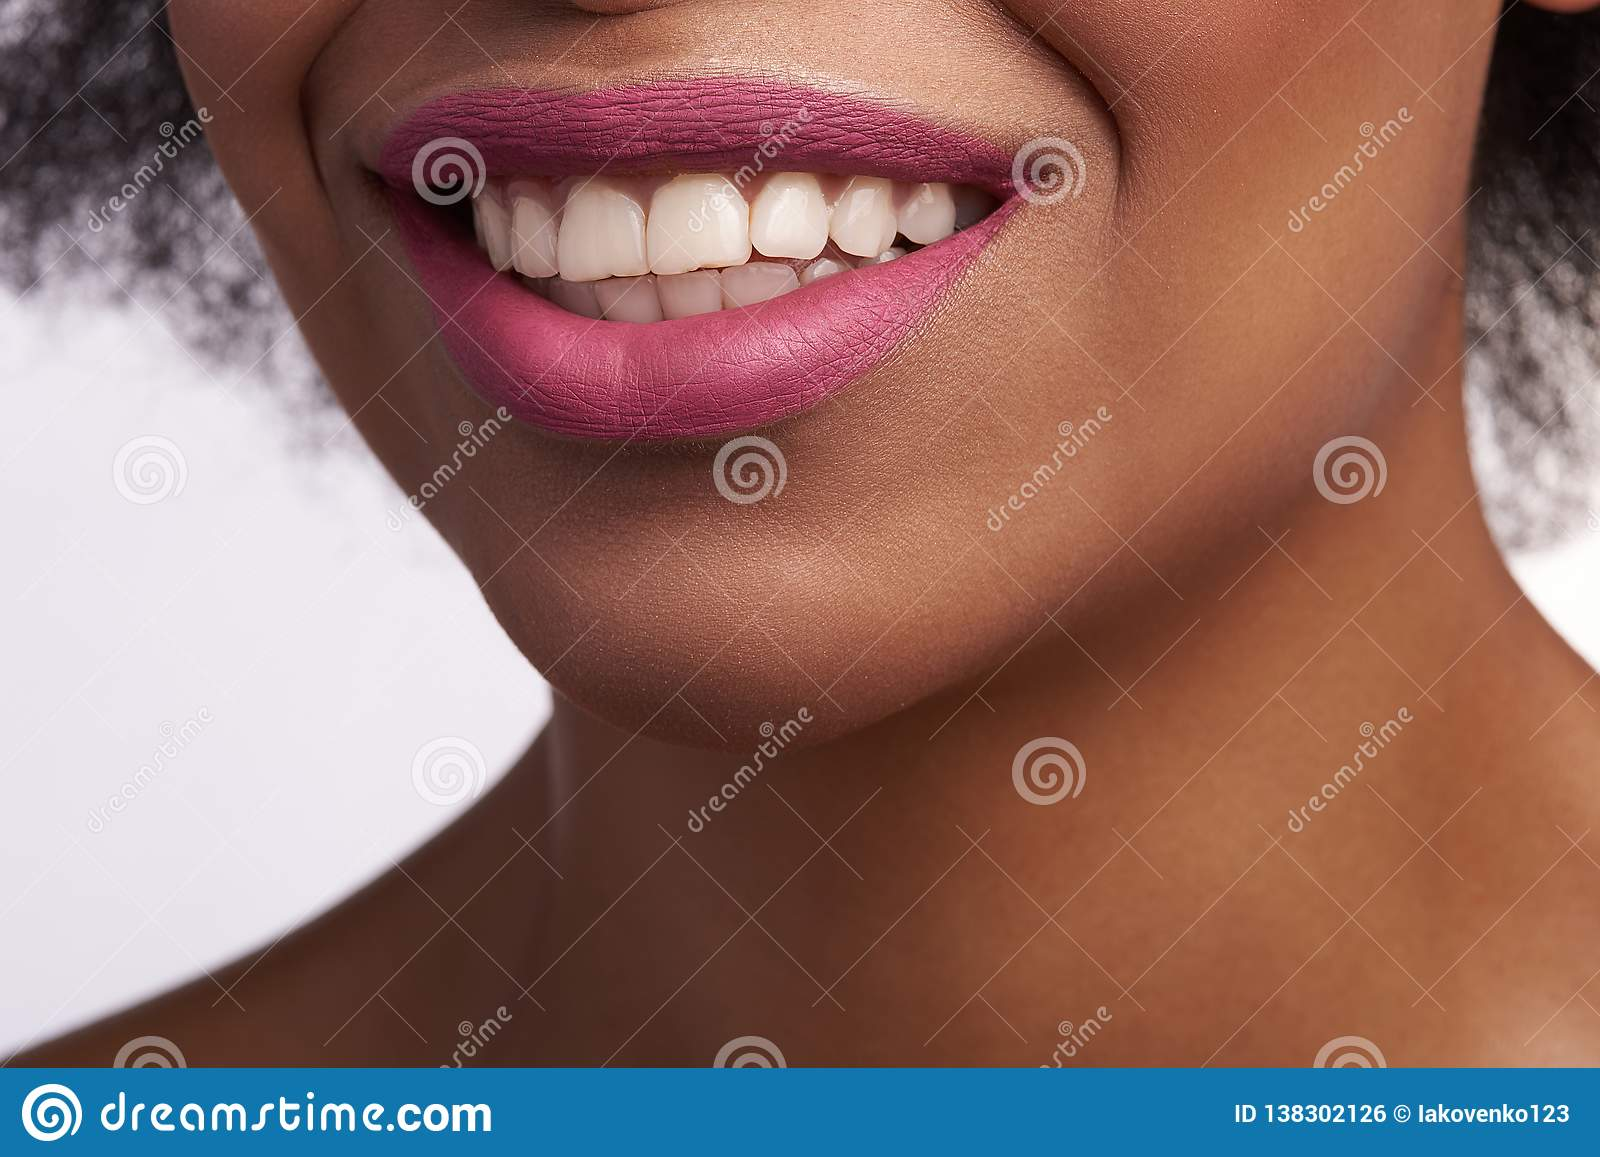 Close up of sensual smiling mouth of ethnic female